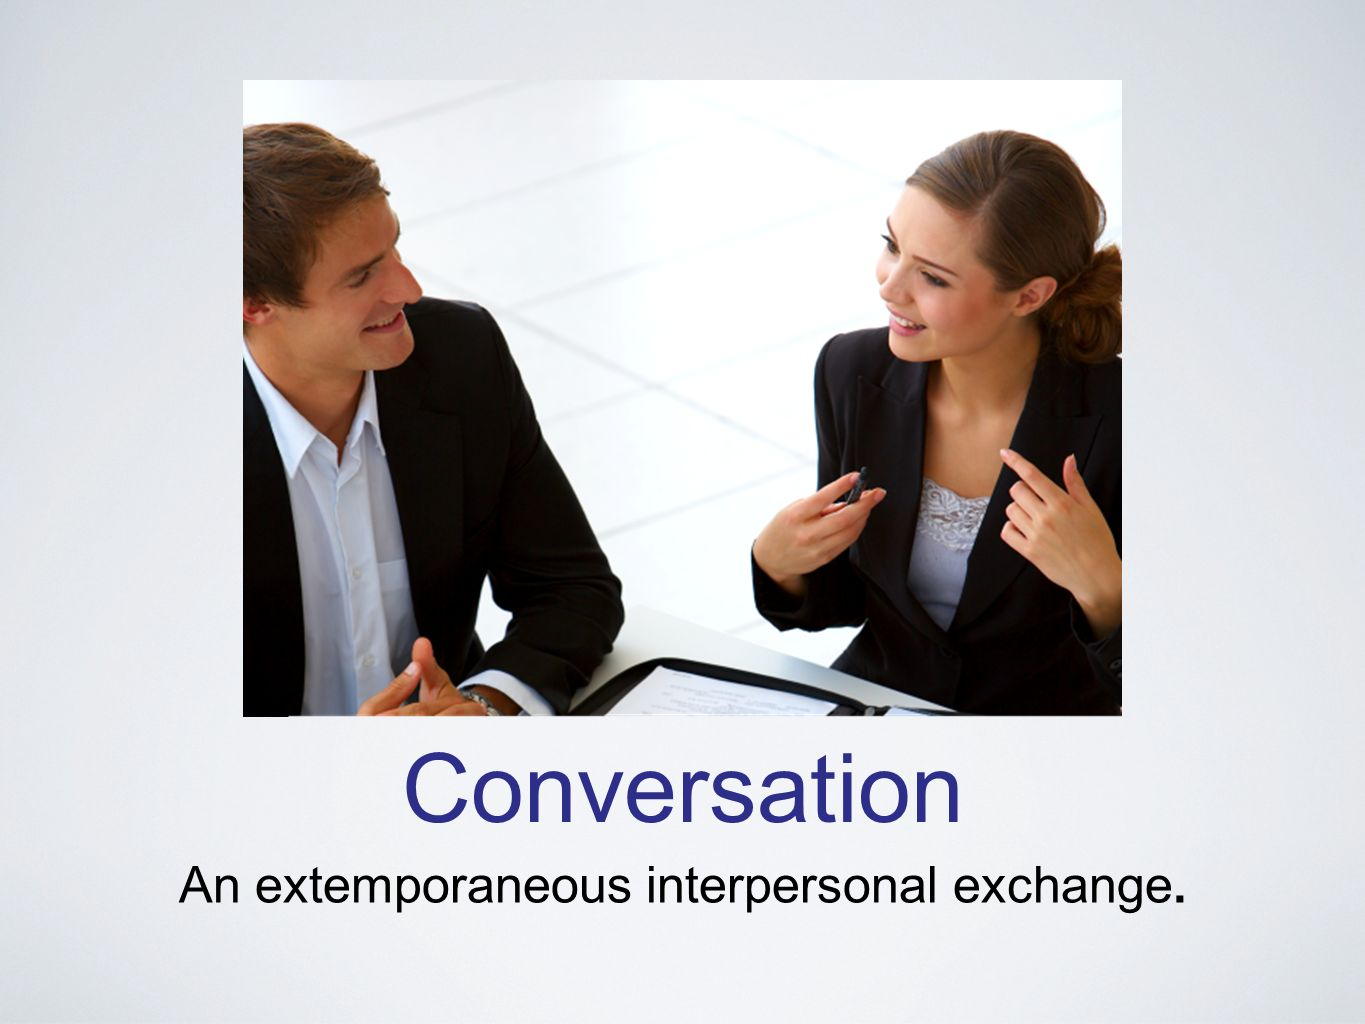 Conversation An extemporaneous interpersonal exchange.